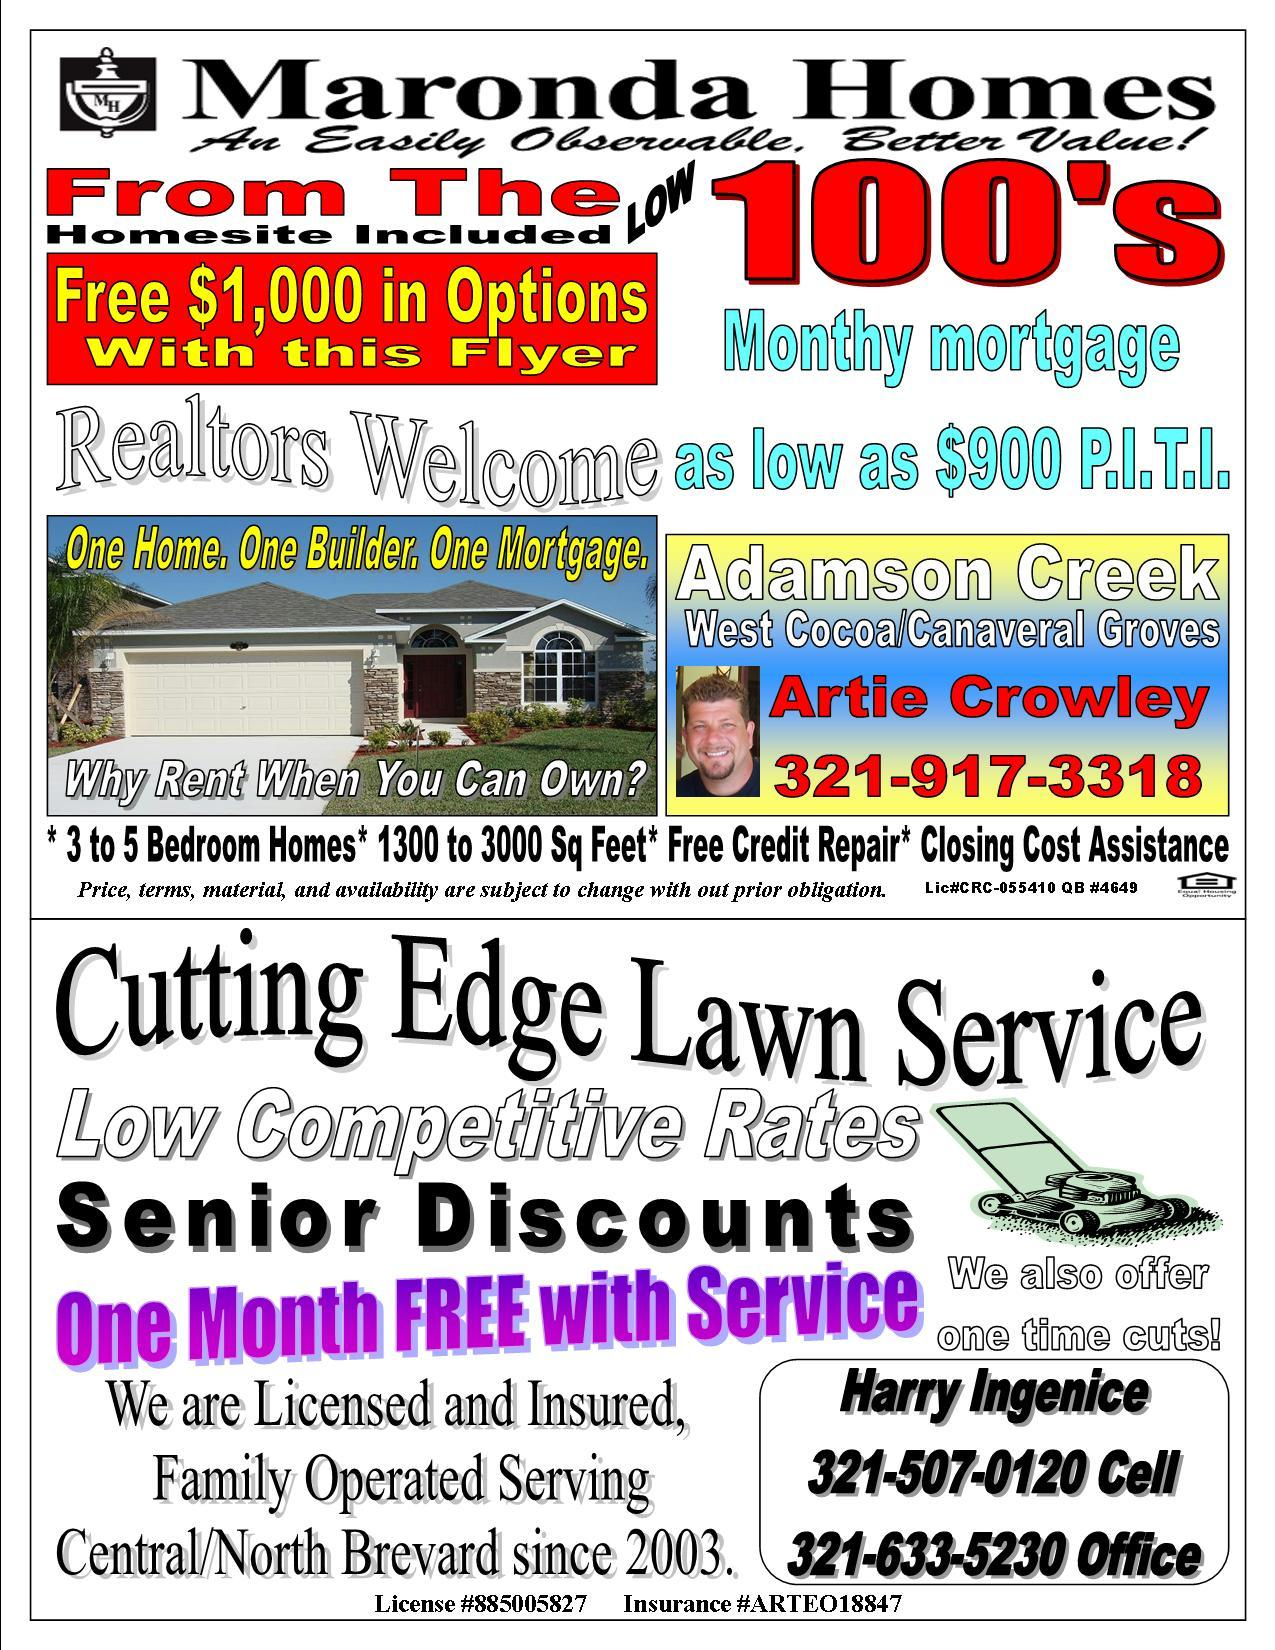 Lawn care advertising ideas - Lawn Care Business Pizzeria Menu Advertisement